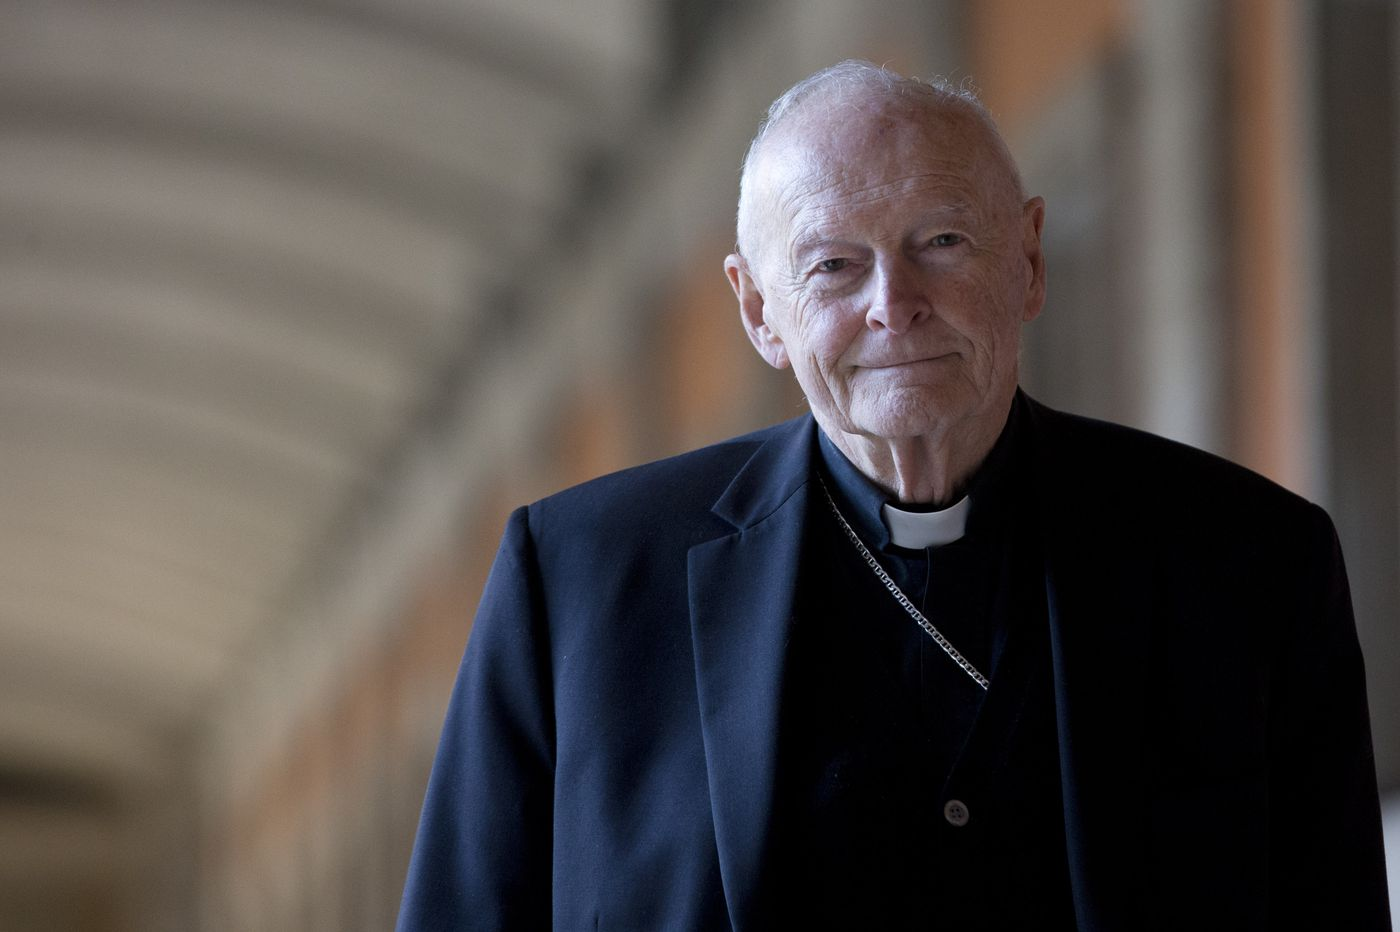 Vatican defrocks former U.S. cardinal McCarrick over sex abuse